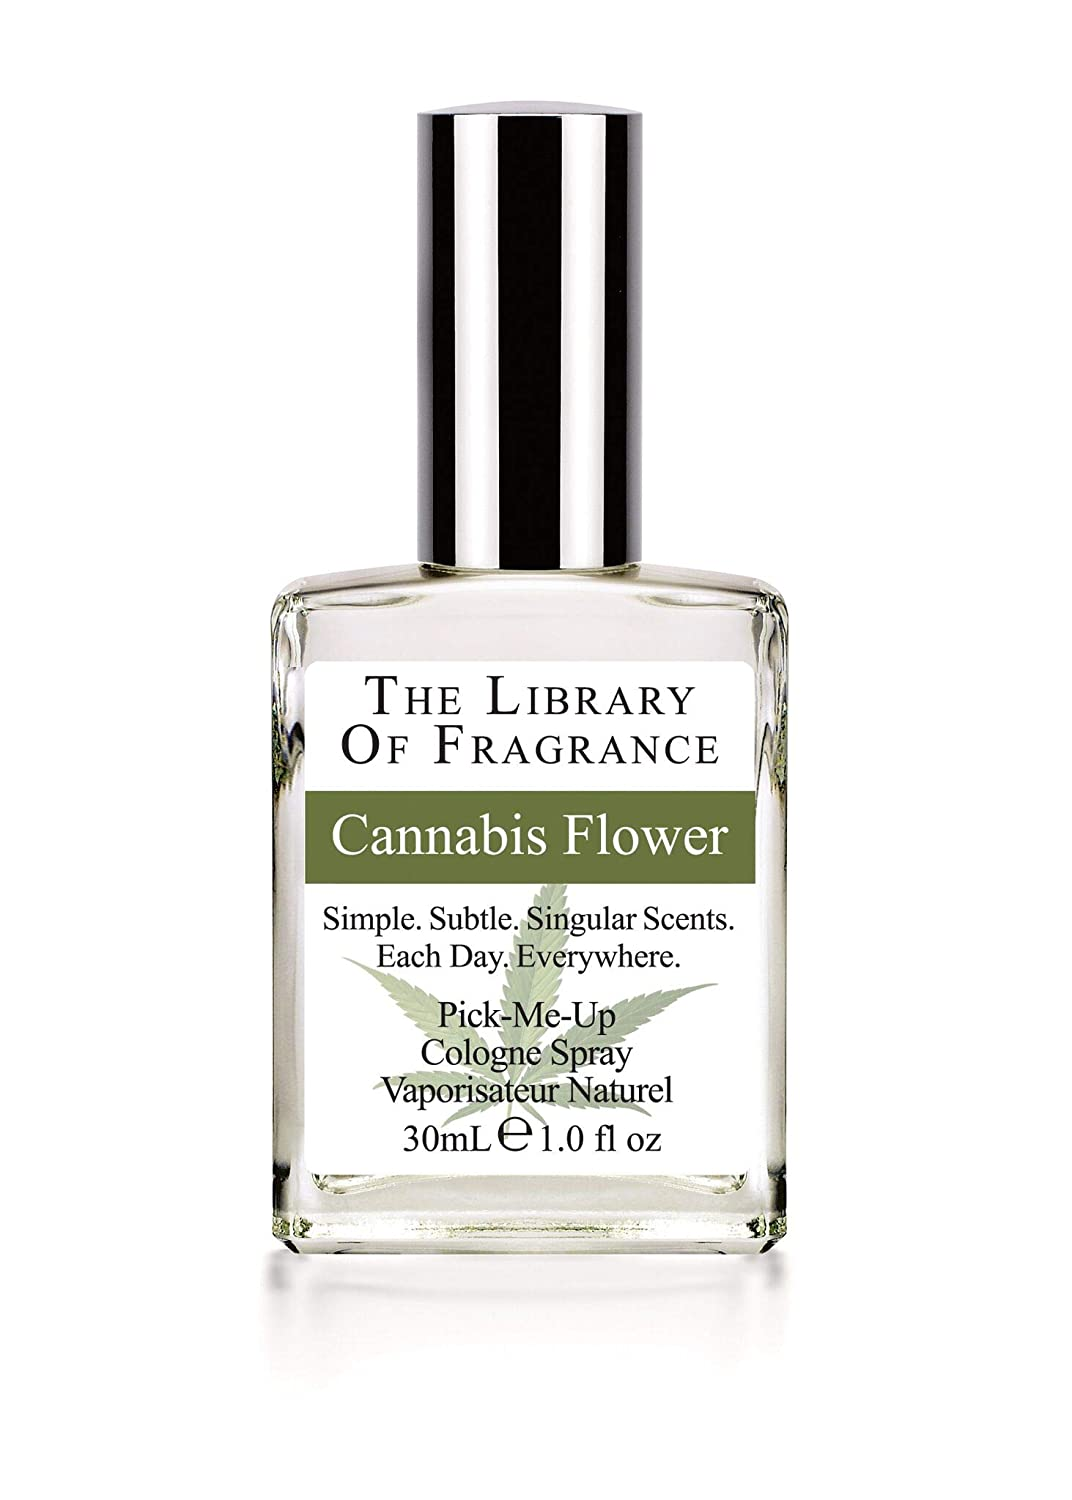 Demeter 1oz Cologne Spray - Cannabis Flower